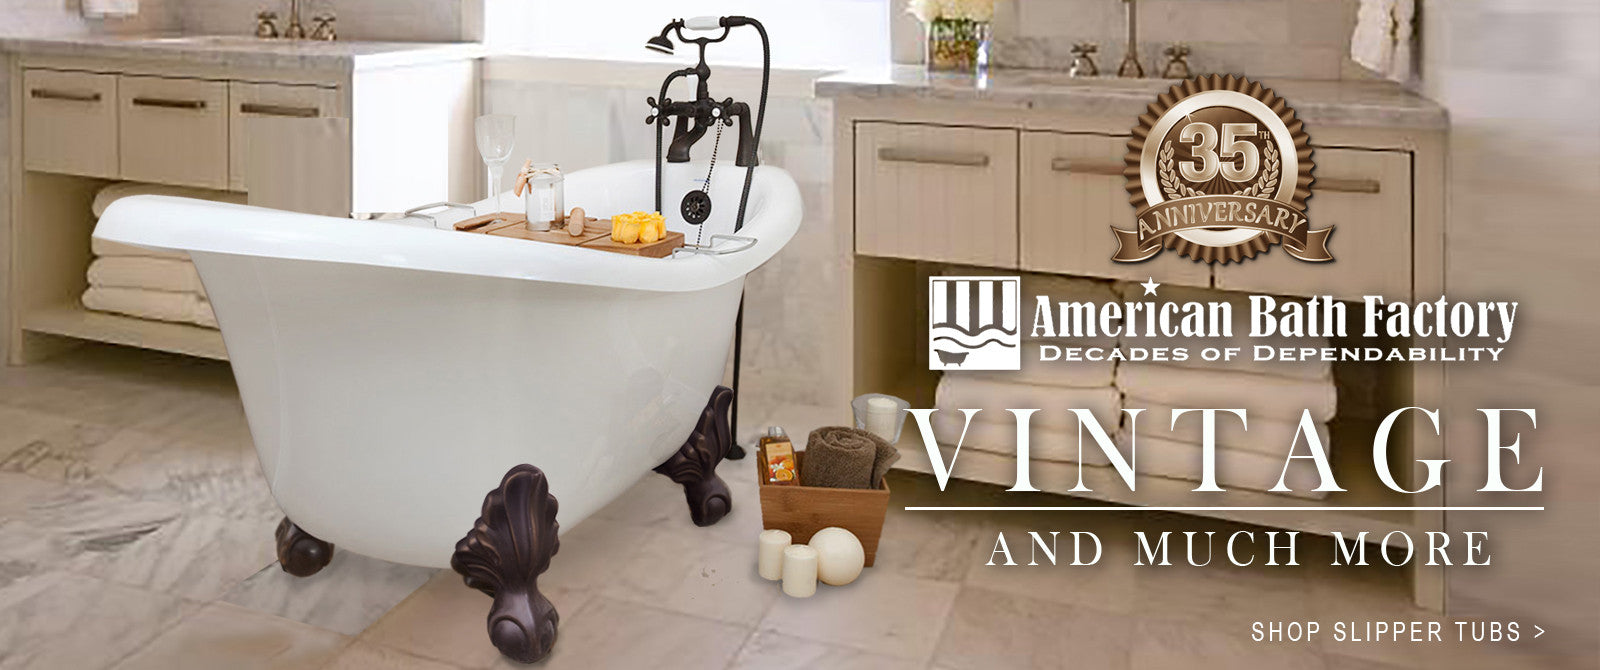 American Bath Factory Home Shower Kits Bathtubs Clawfoot Tub Faucet